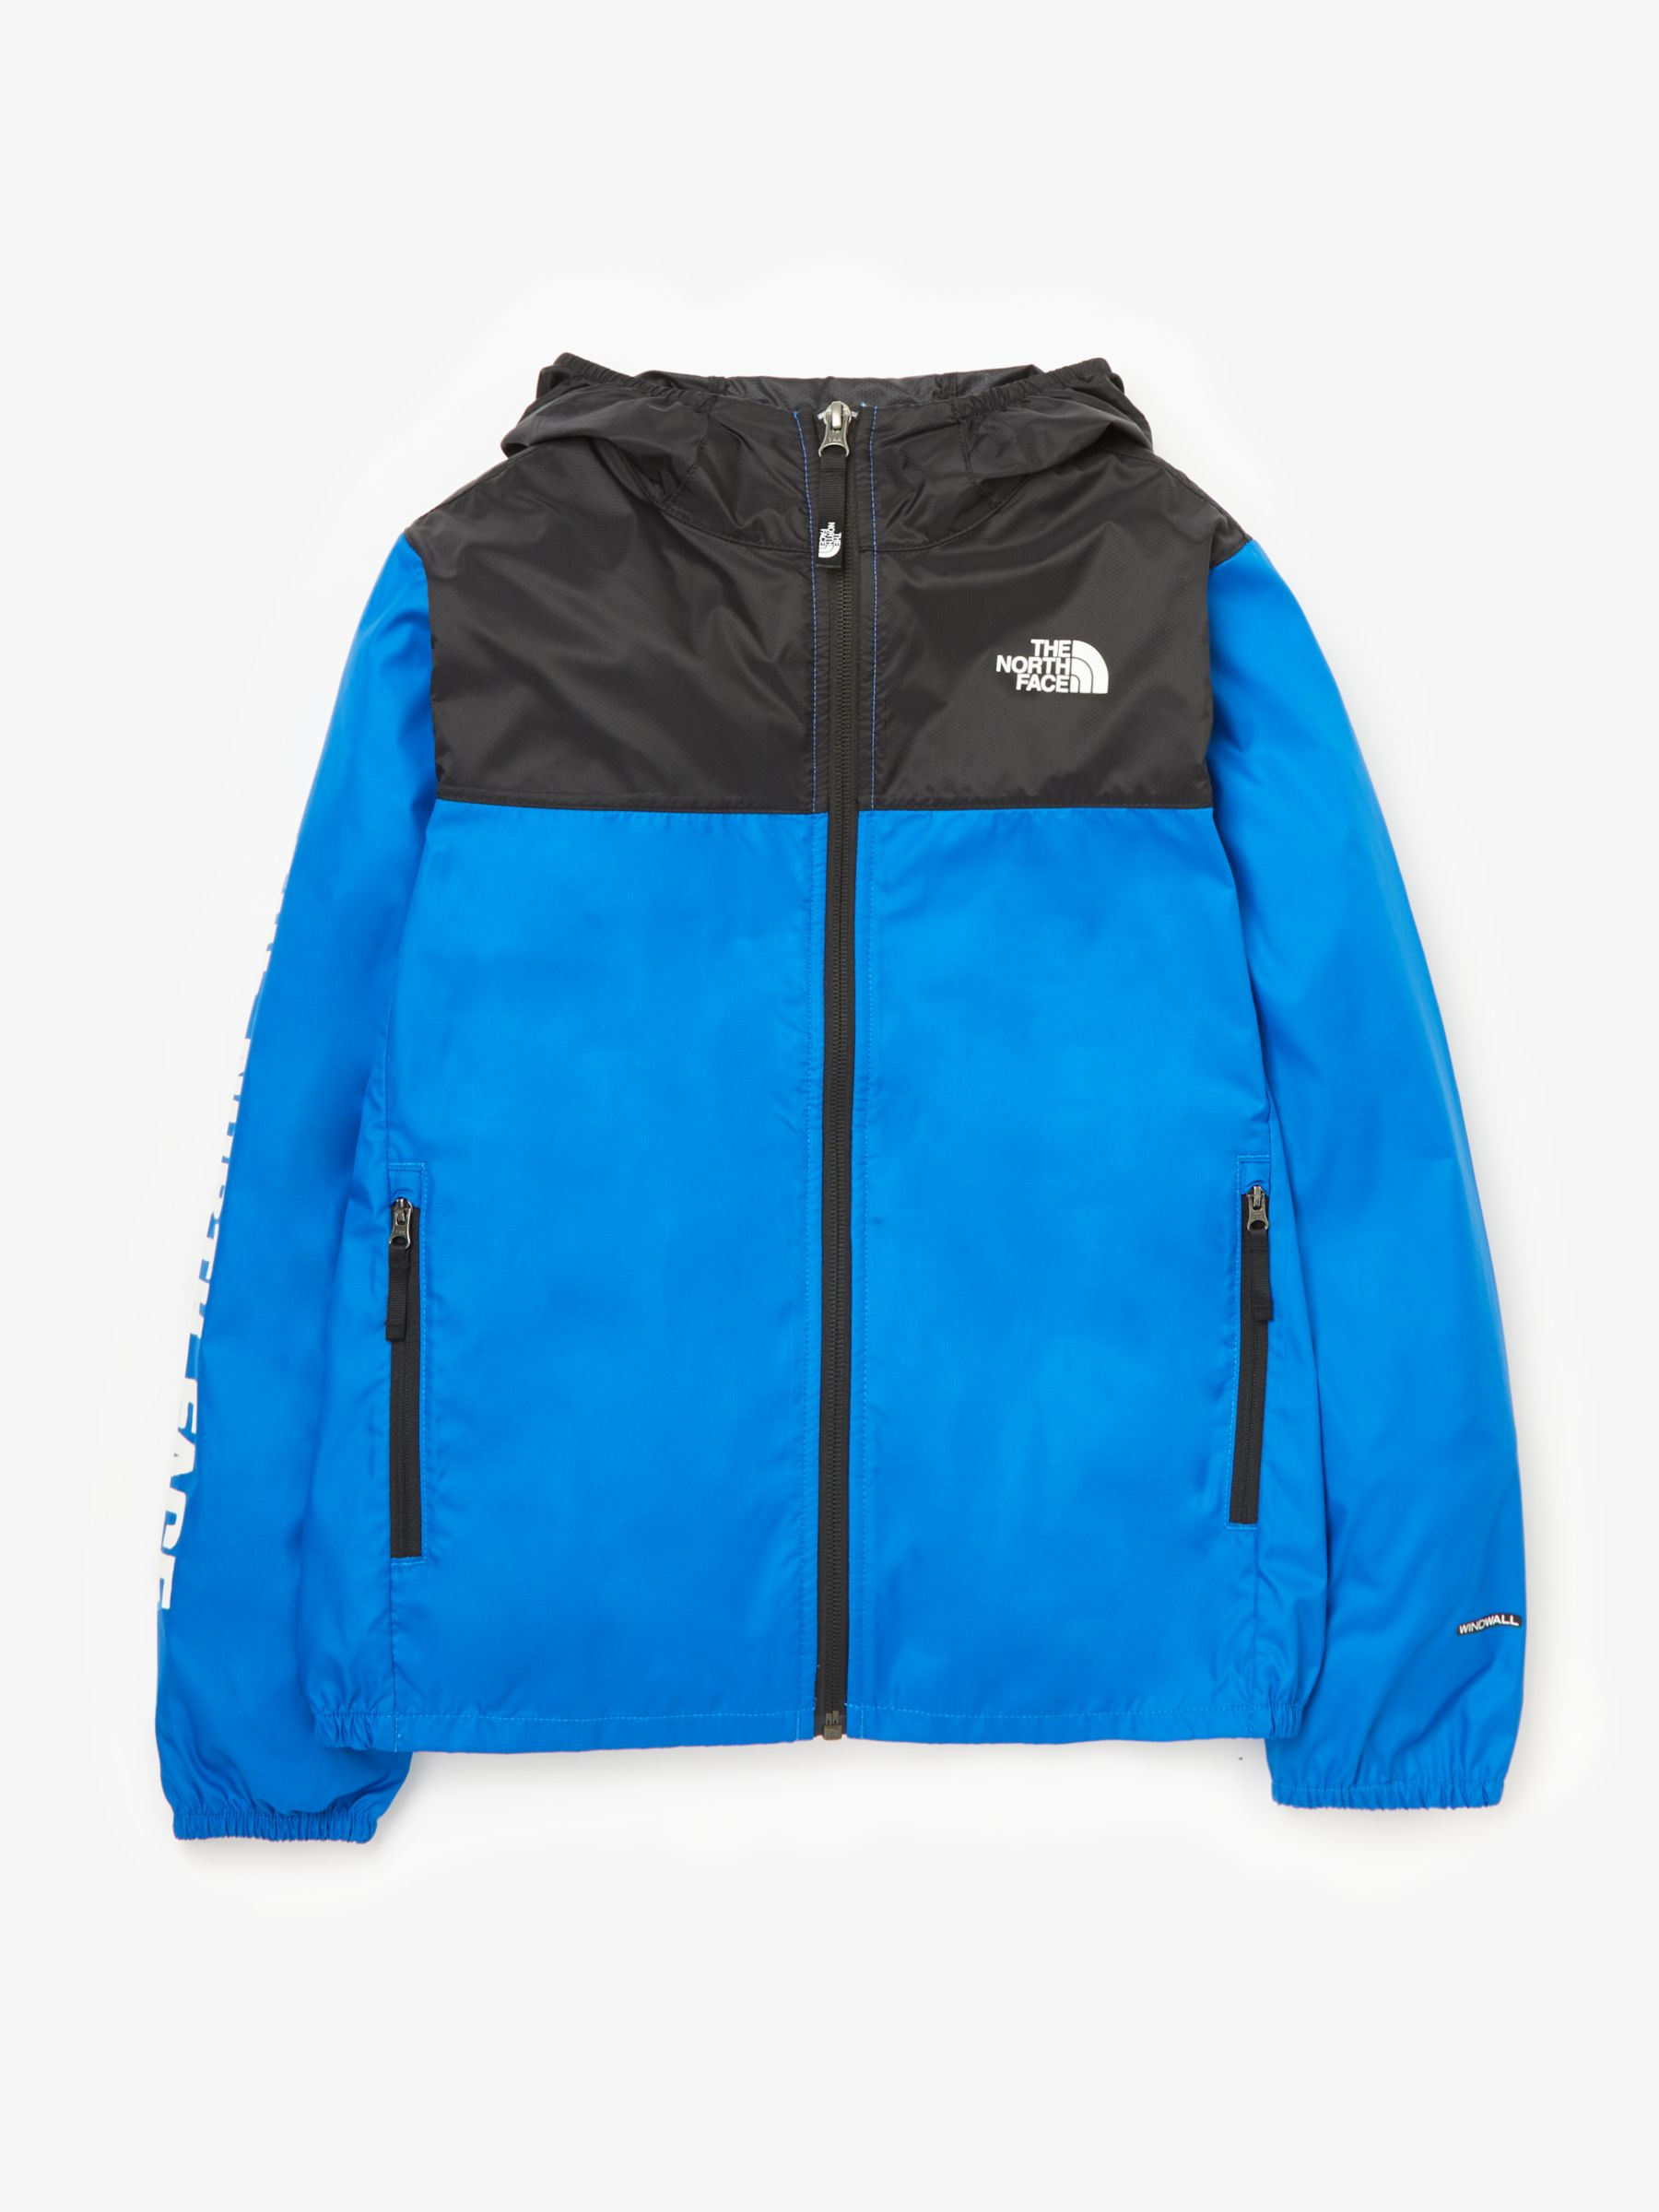 75b706c56 The North Face Boys' Reactor Wind Jacket, Blue at John Lewis & Partners